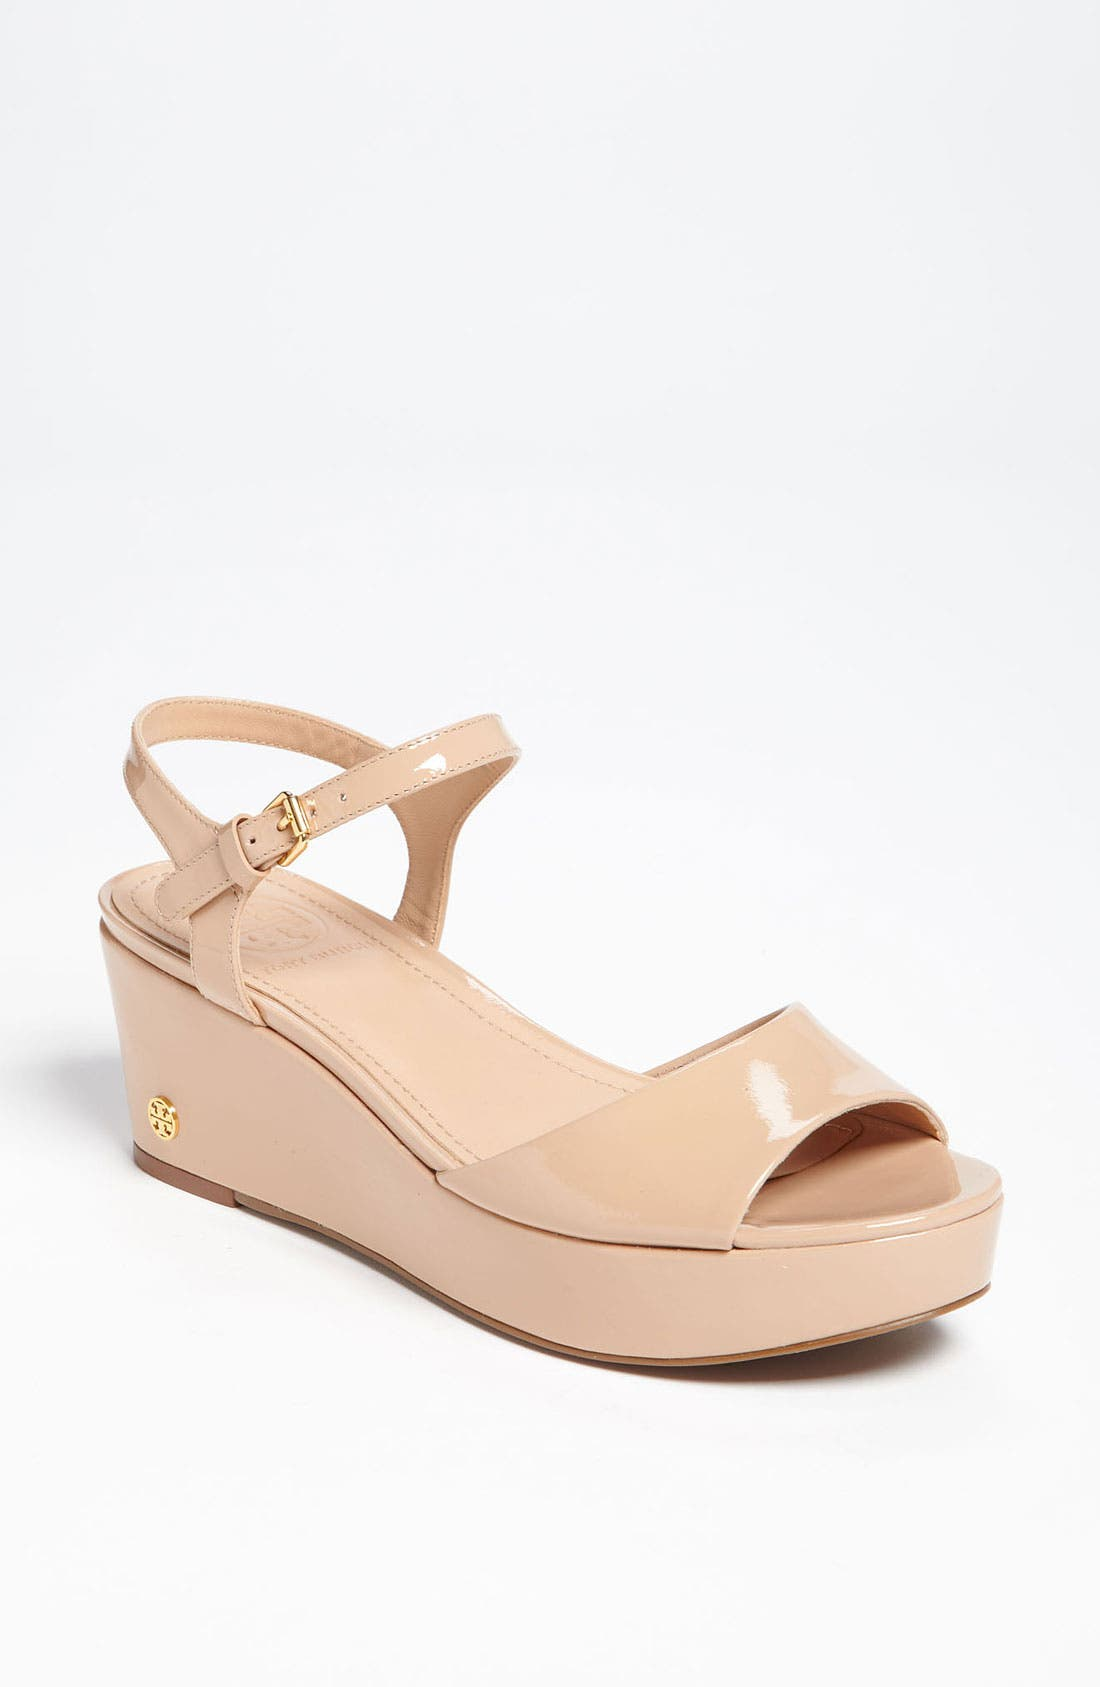 Alternate Image 1 Selected - Tory Burch 'Abena Mid' Sandal